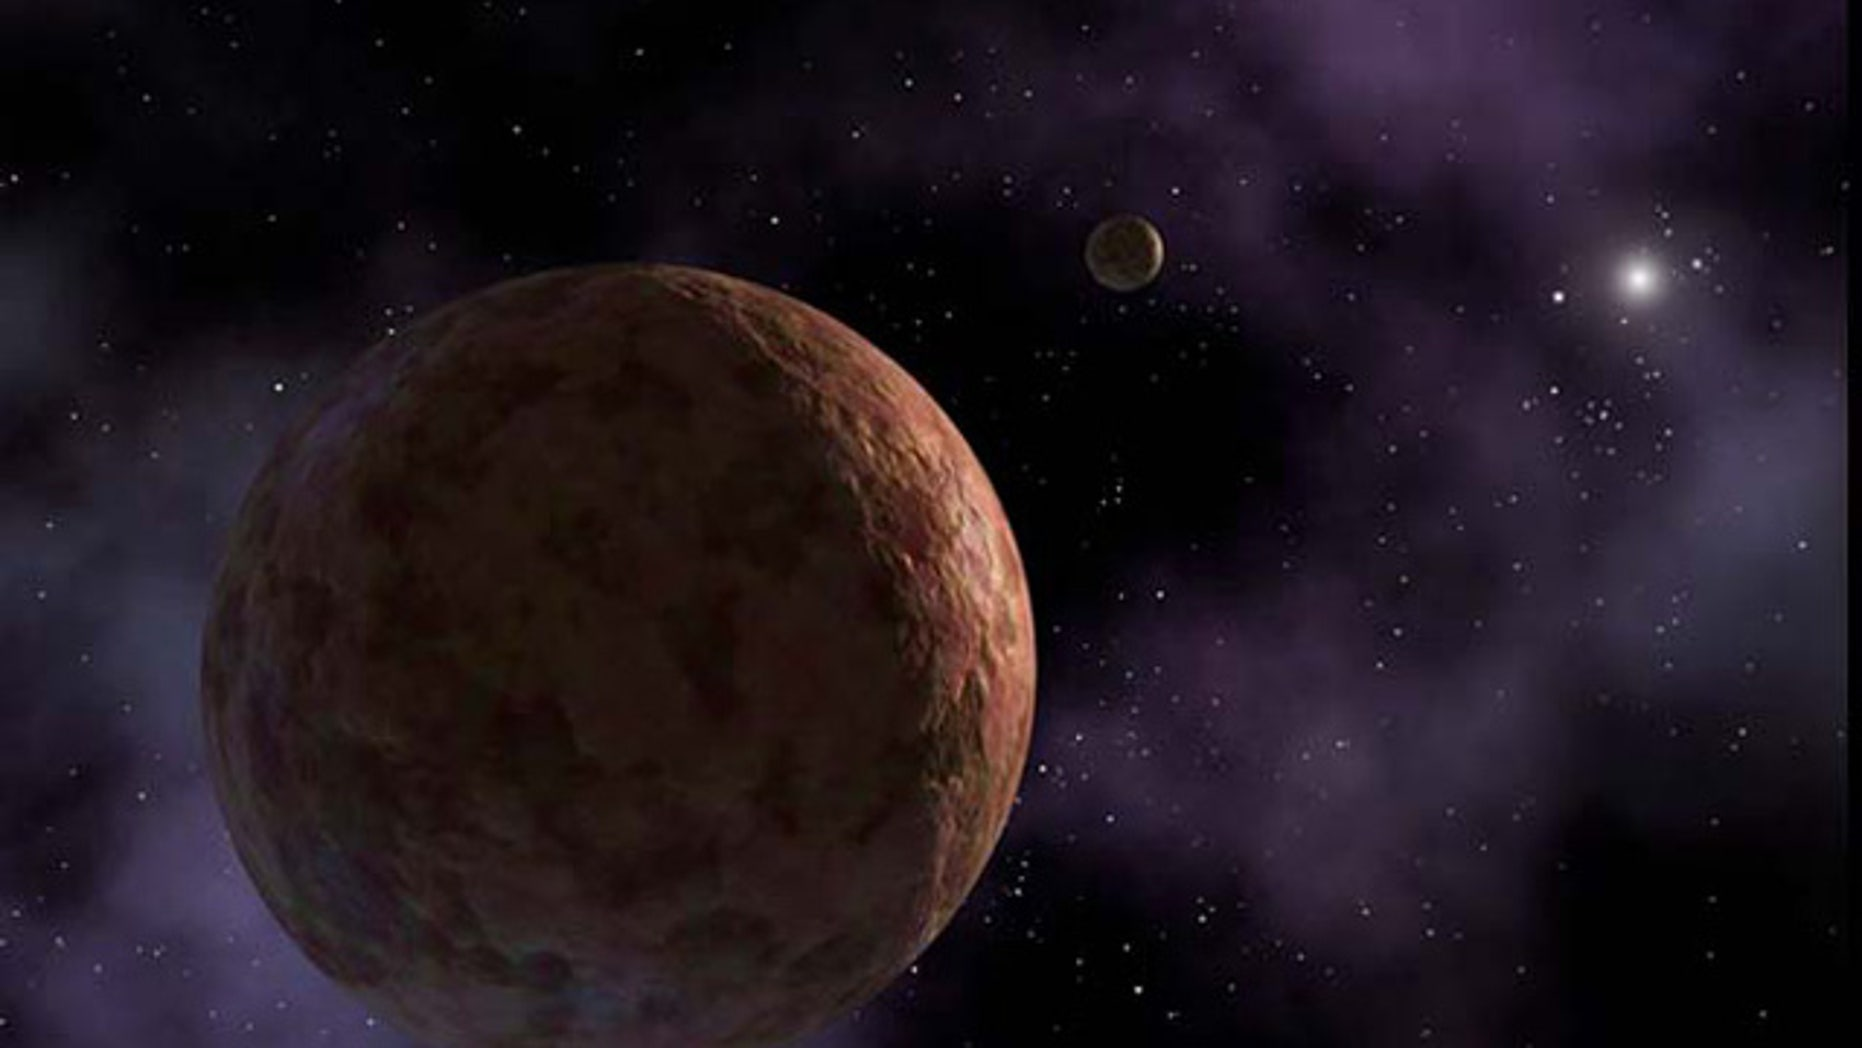 Artist's conception of Sedna, an exoplanet hiding on the fringes of our solar system.